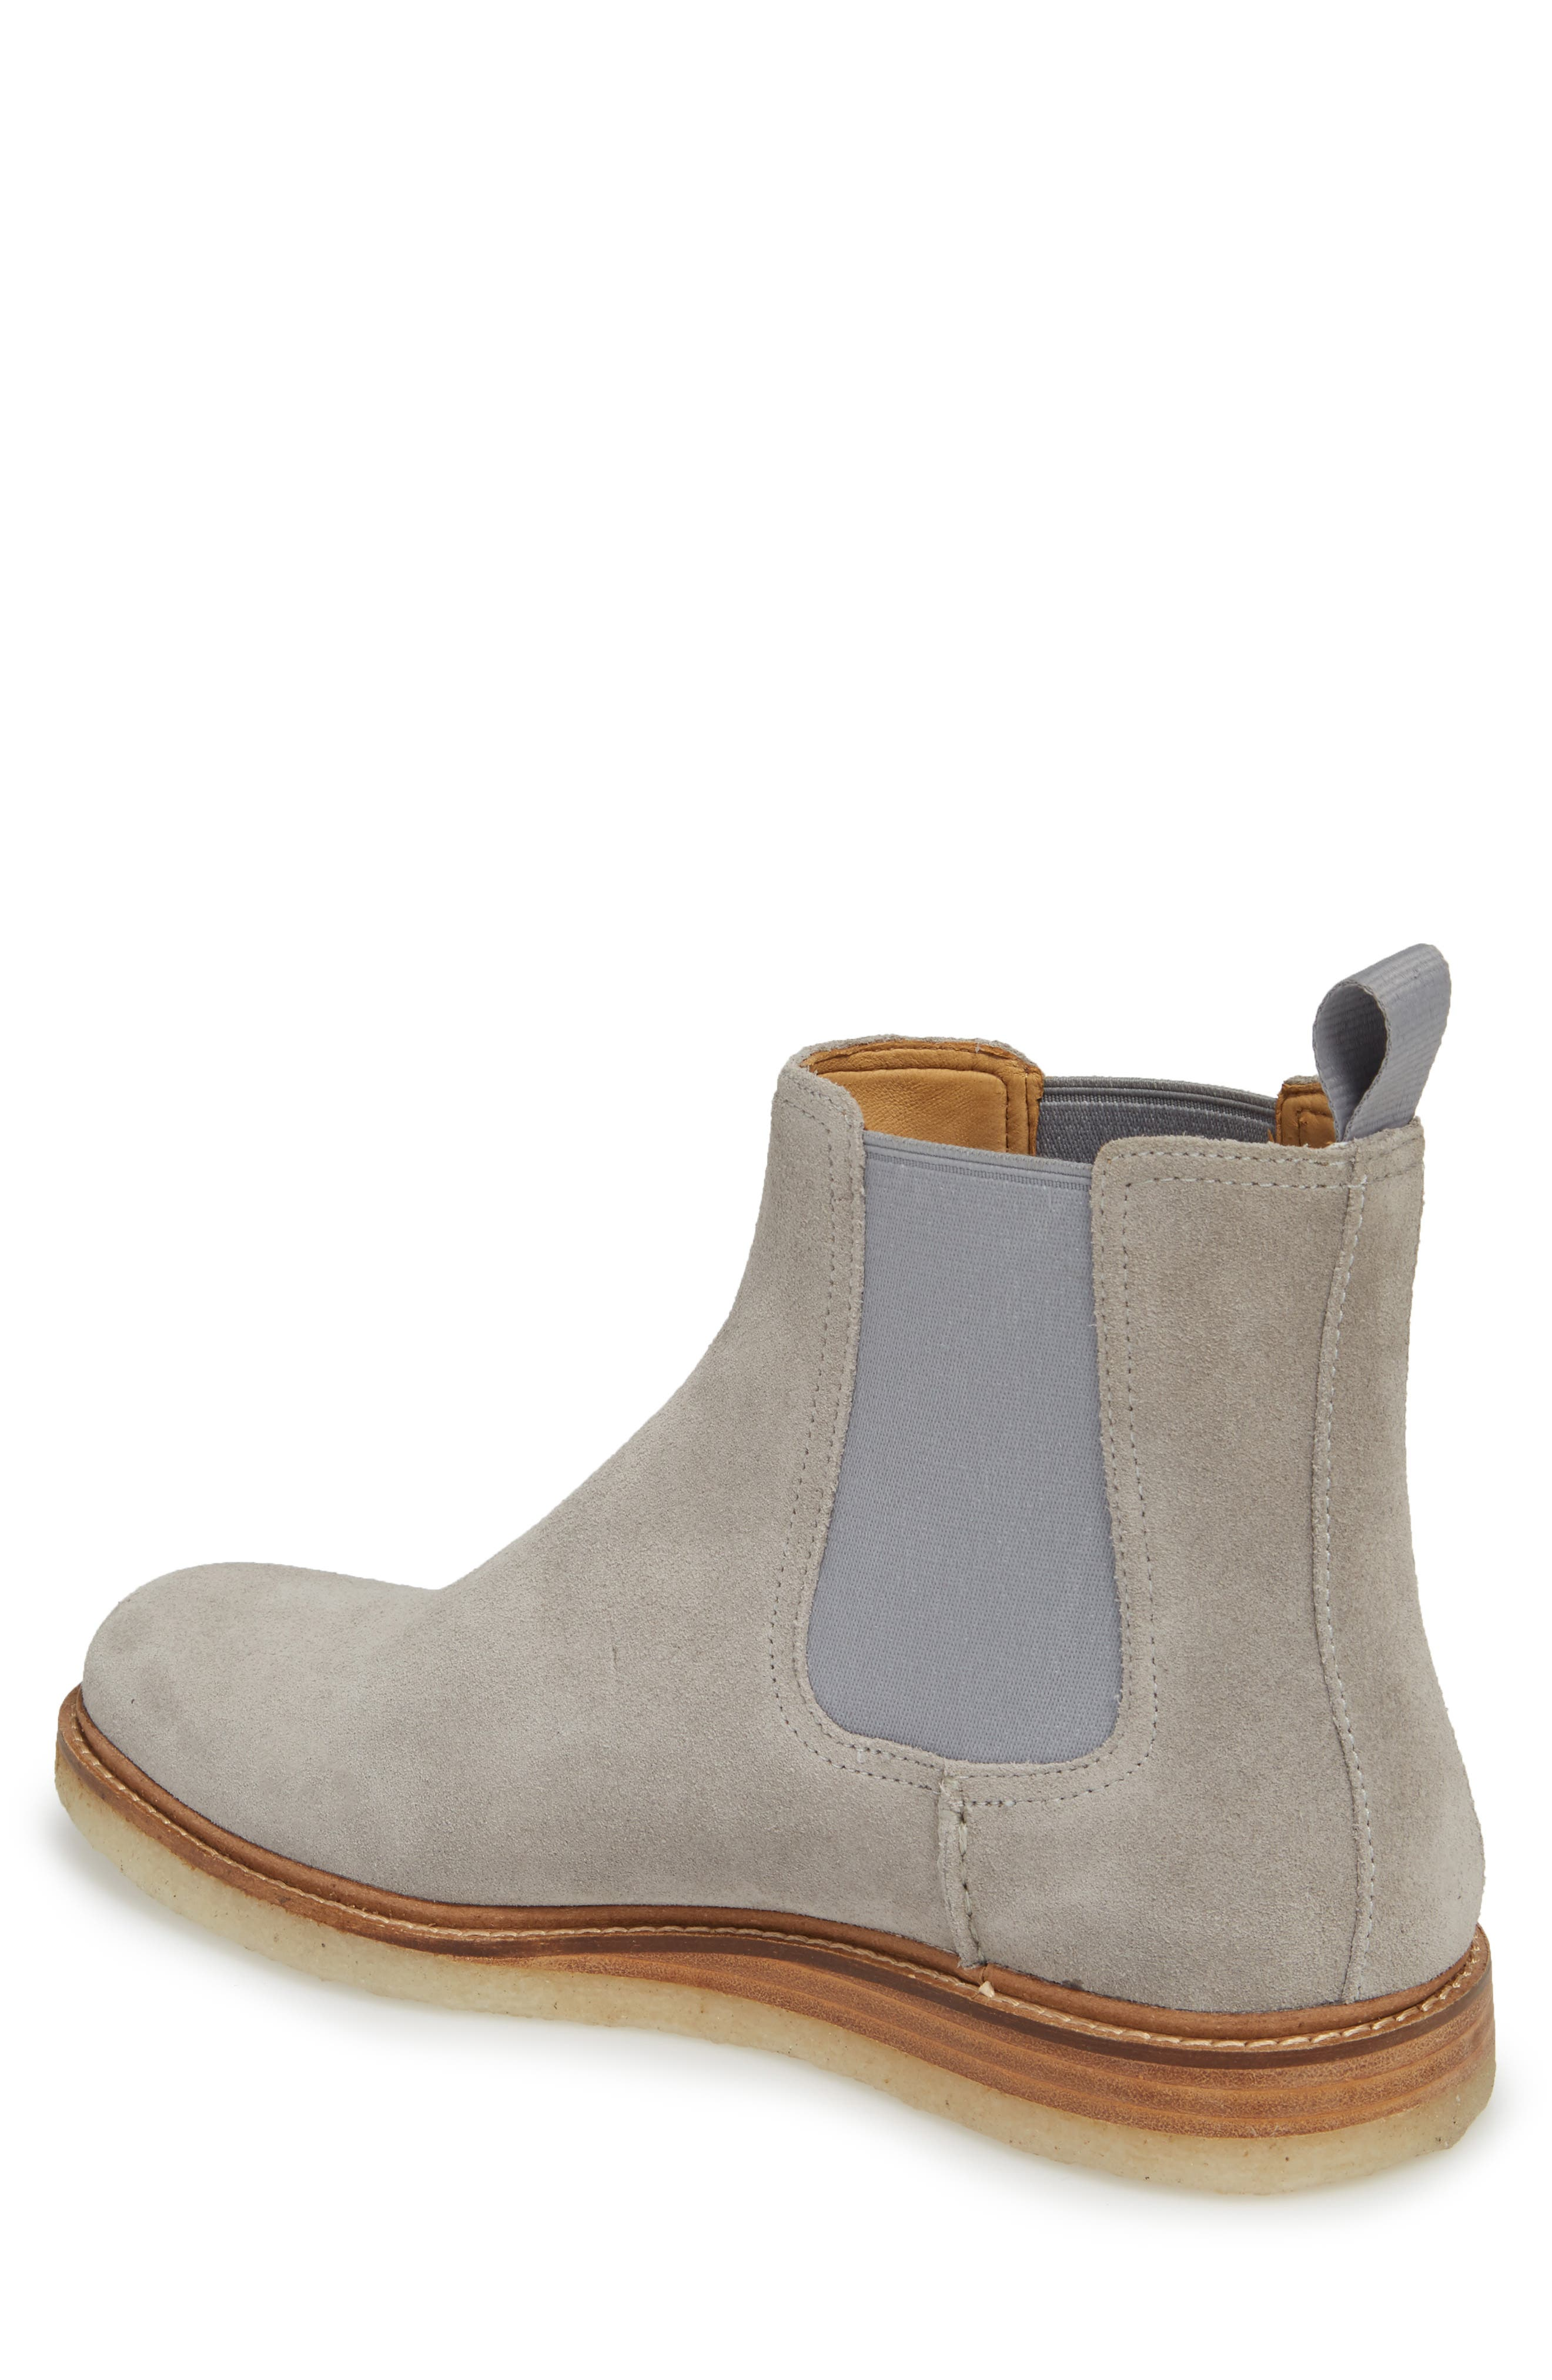 Gold Cup Crepe Chelsea Boot,                             Alternate thumbnail 2, color,                             Grey Leather/ Suede